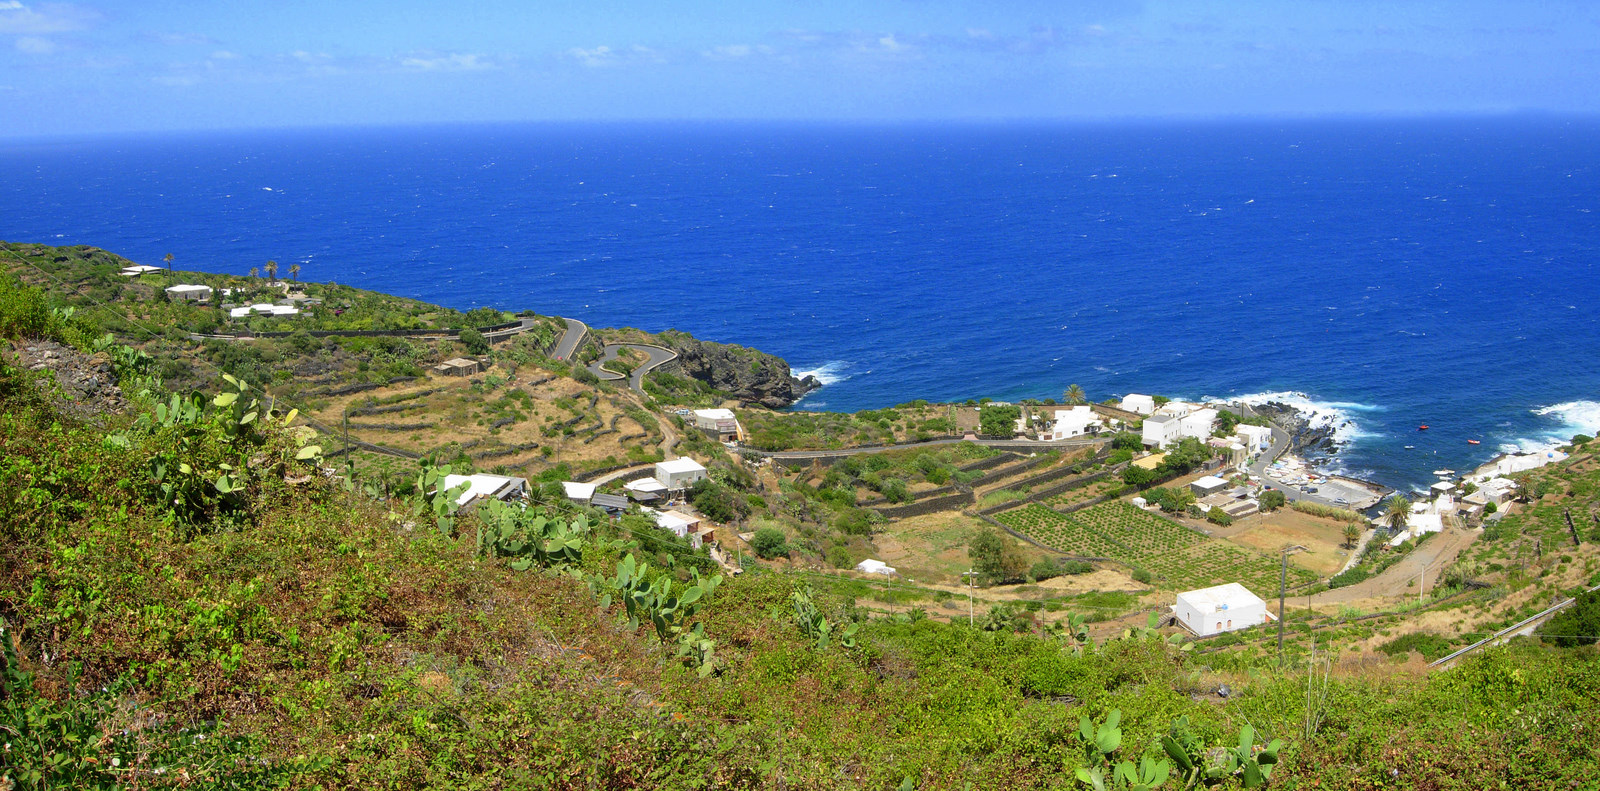 Things to do in Pantelleria, Sicilia - Pantelleria